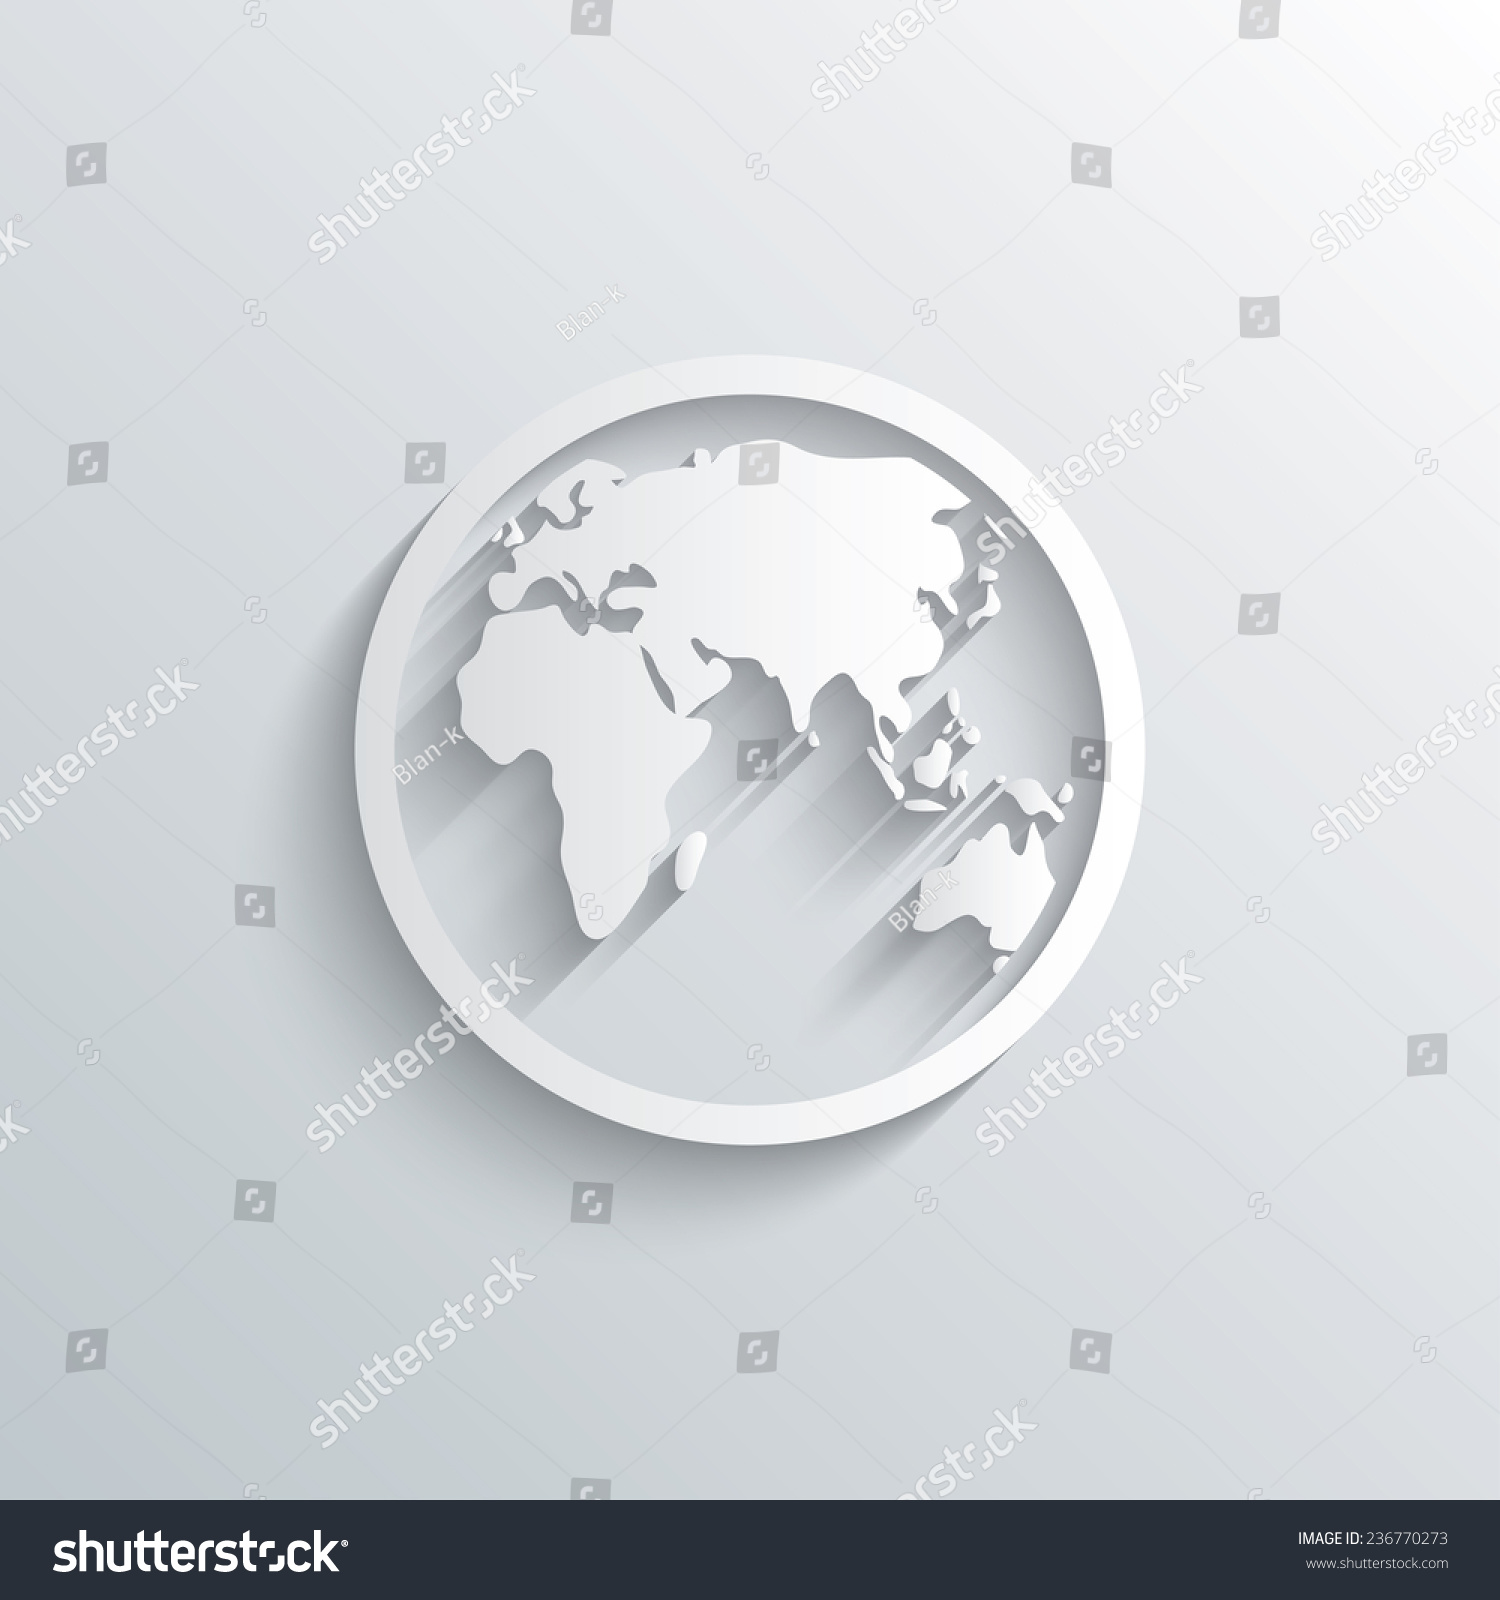 Cutout paper background globe sign icon stock vector 236770273 cutout paper background globe sign icon stock vector 236770273 shutterstock gumiabroncs Images